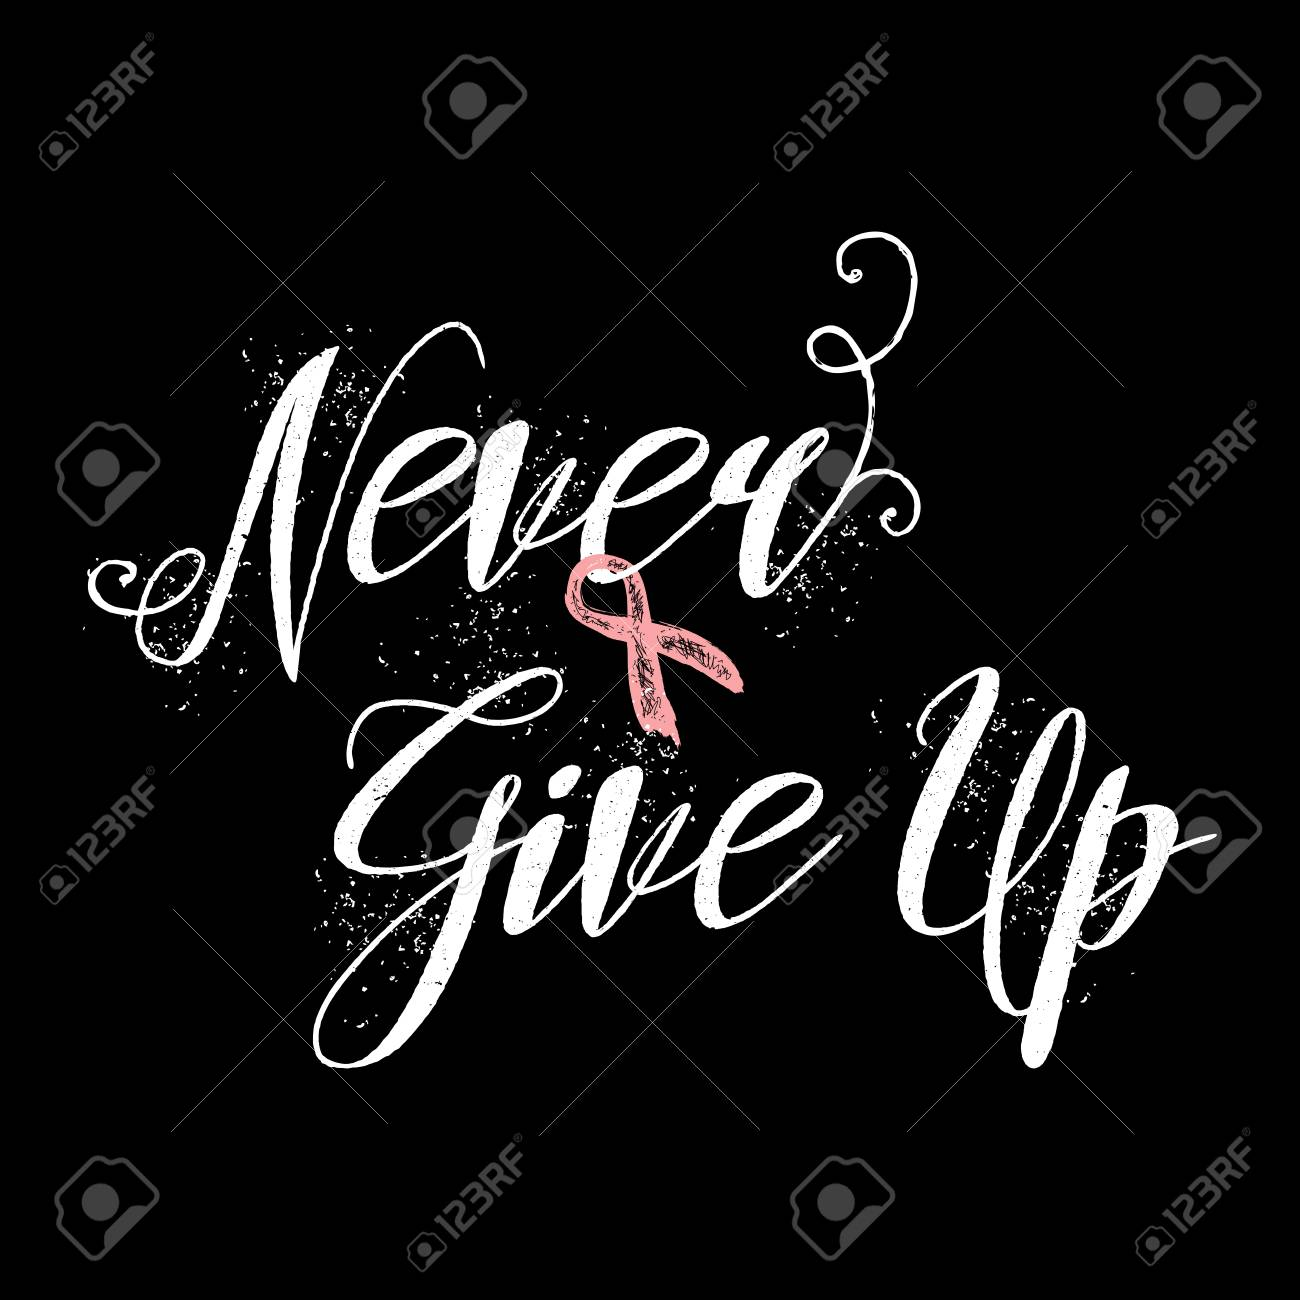 never give up inspirational quote about breast cancer awareness